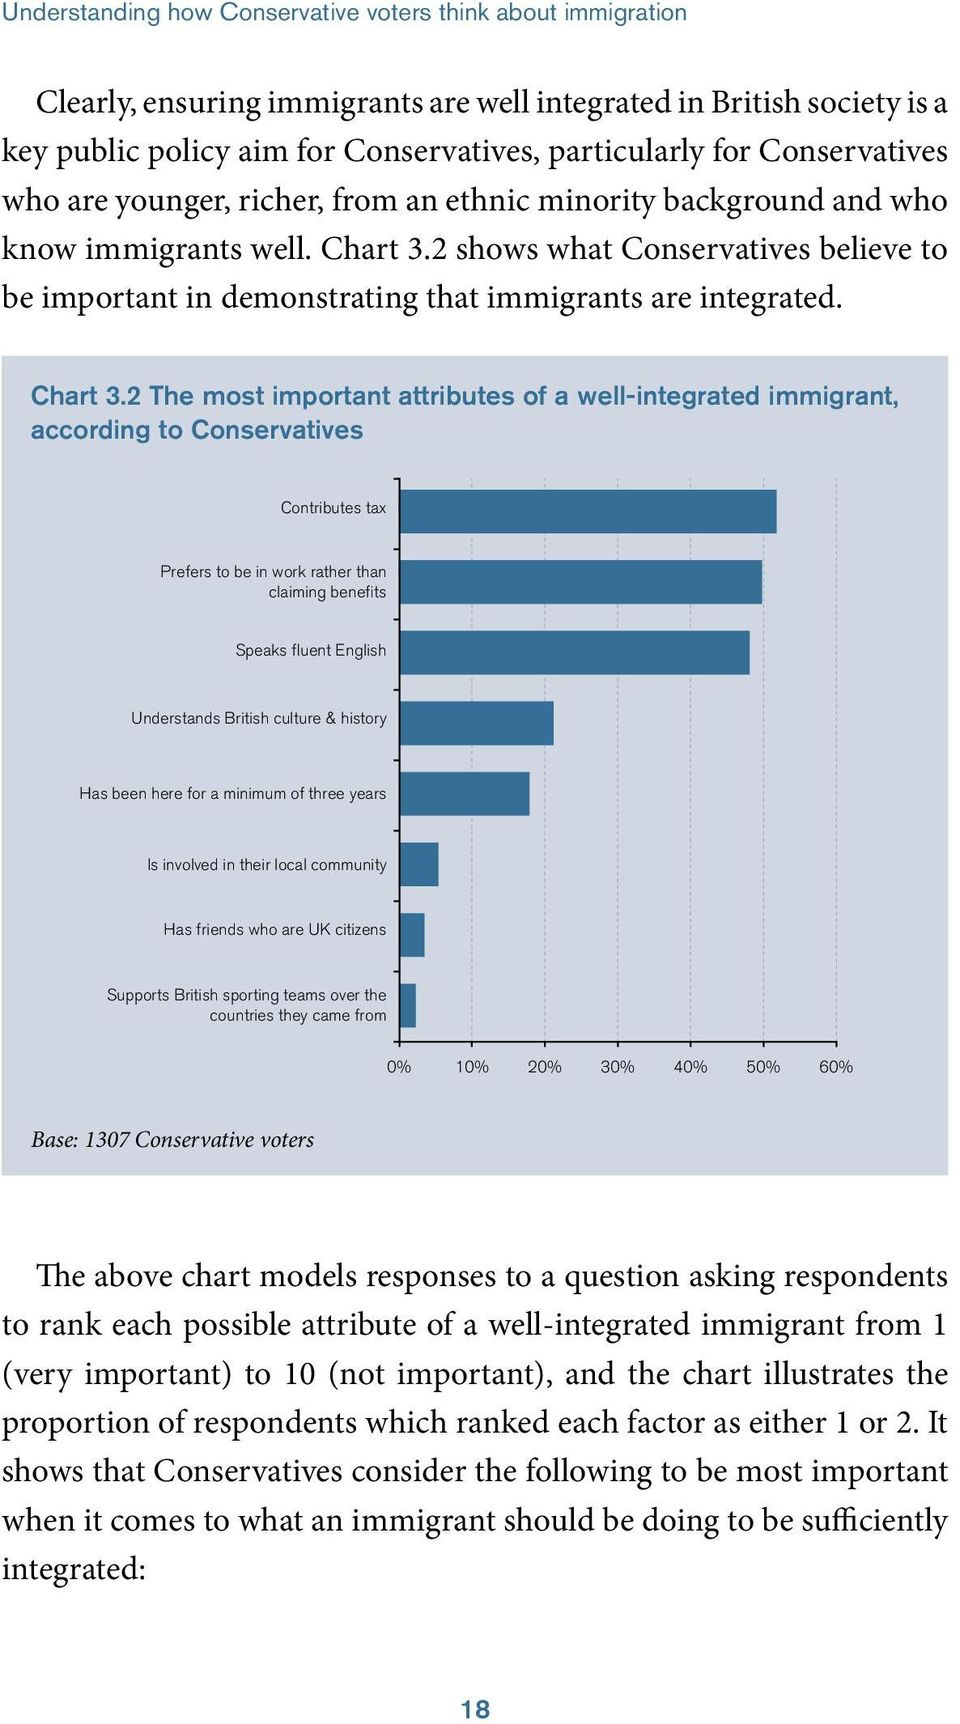 2 shows what Conservatives believe to be important in demonstrating that immigrants are integrated. Chart 3.